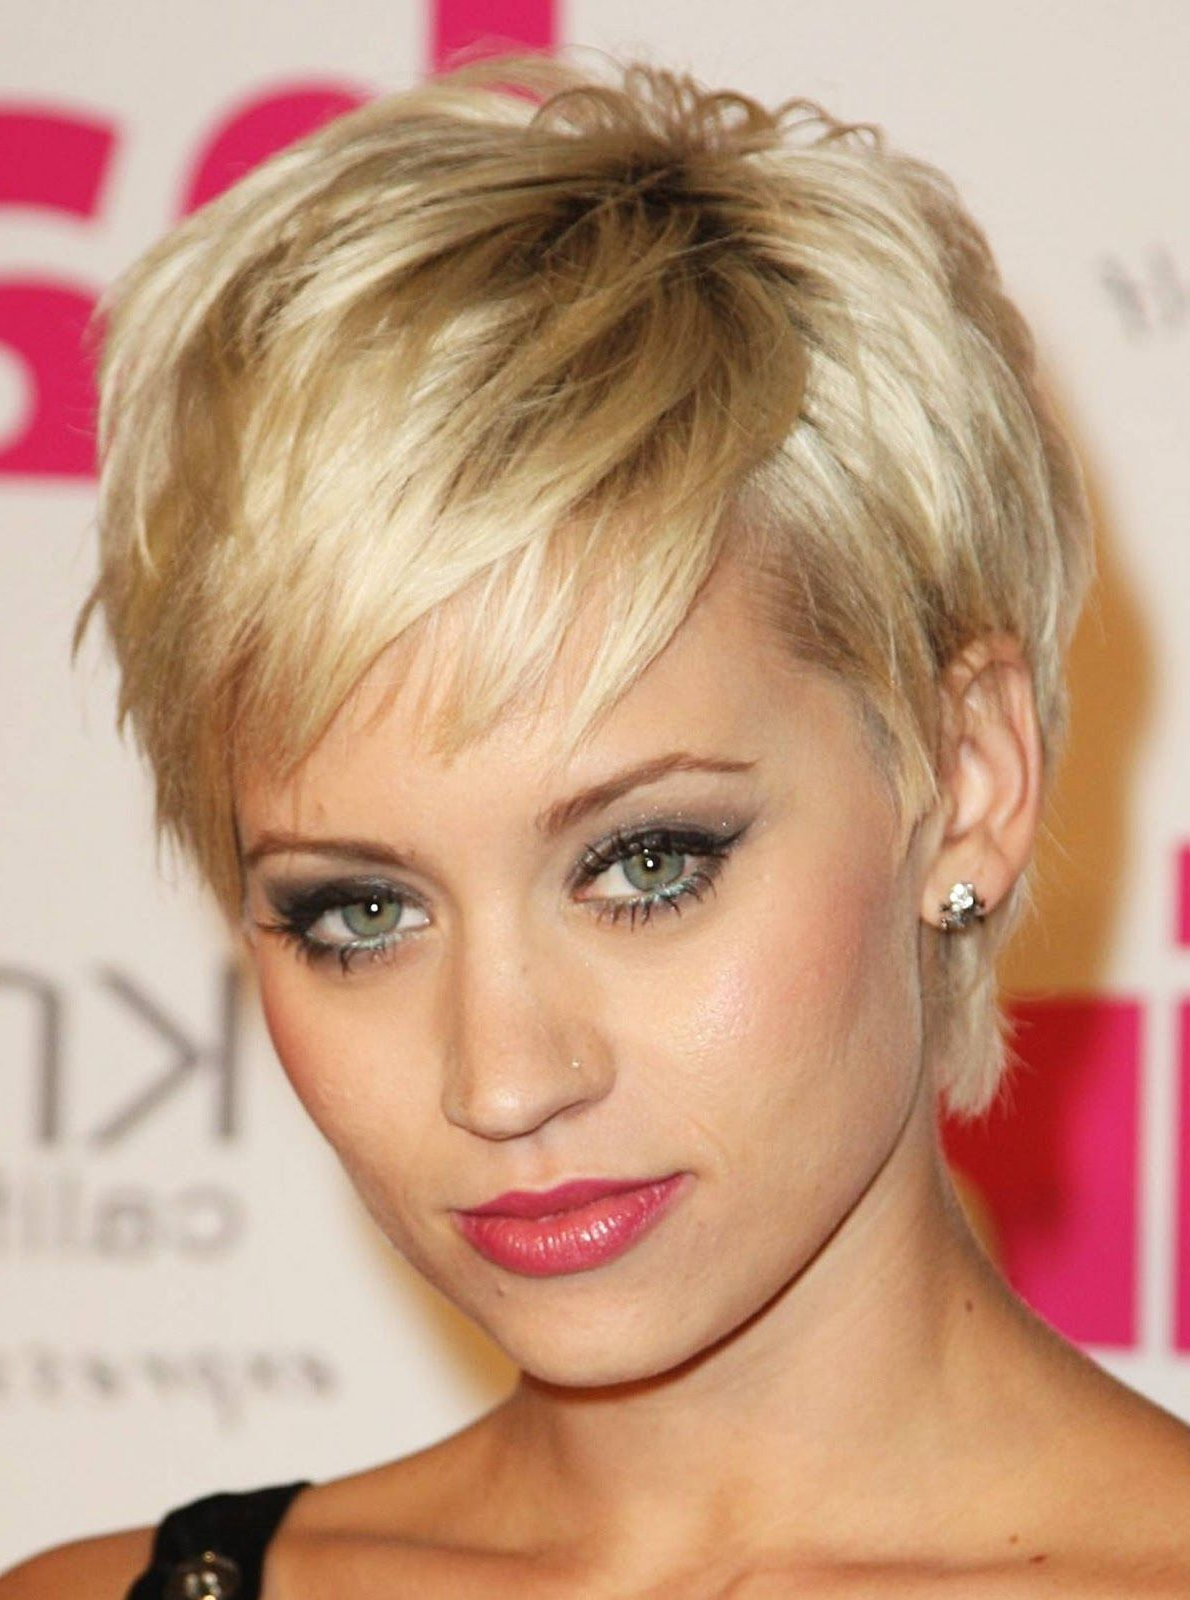 Easy Maintenance Haircuts For Women | Short Hairstyles For Women Pertaining To Low Maintenance Short Haircuts (View 2 of 25)